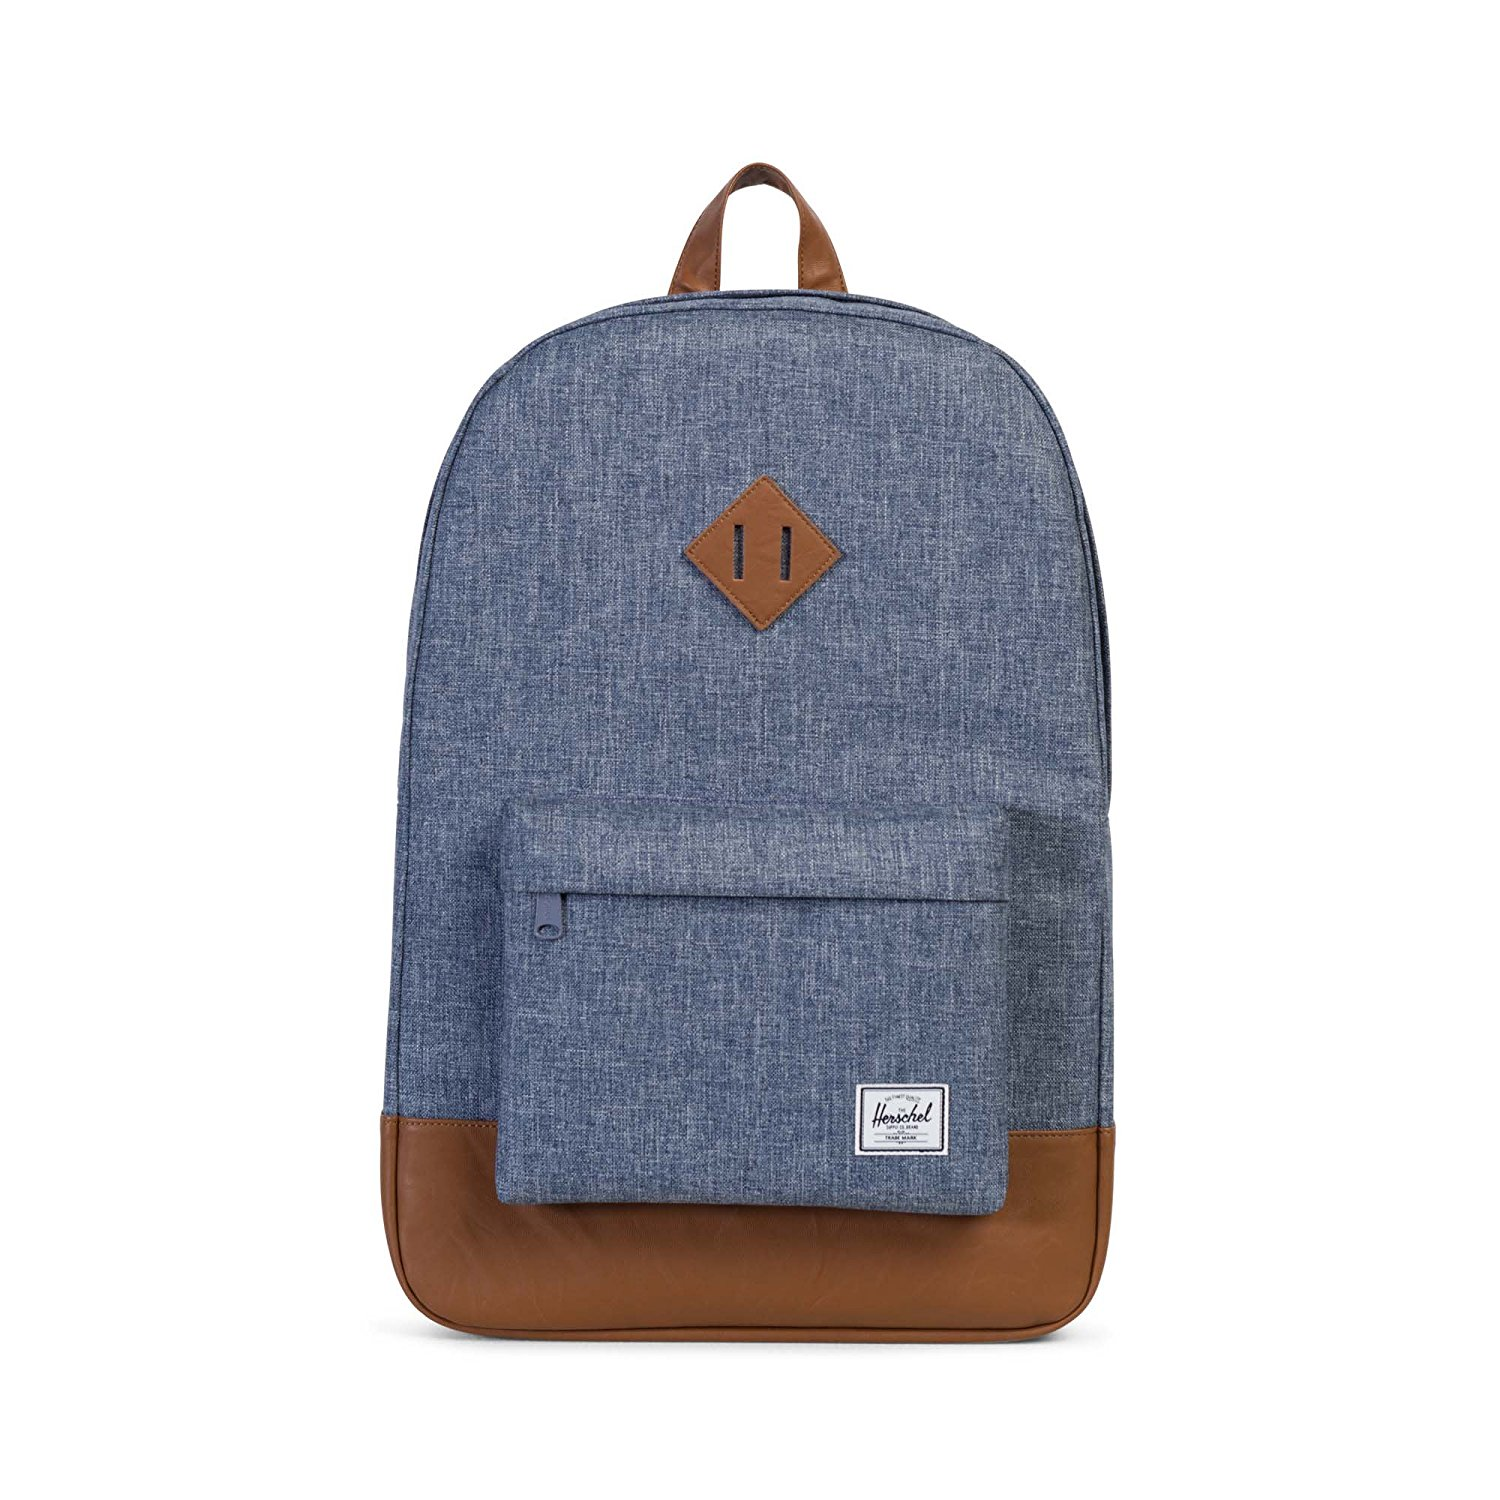 d2411e18e7f3 Heritage Backpack is definitely a great choice.  59.99 from Amazon